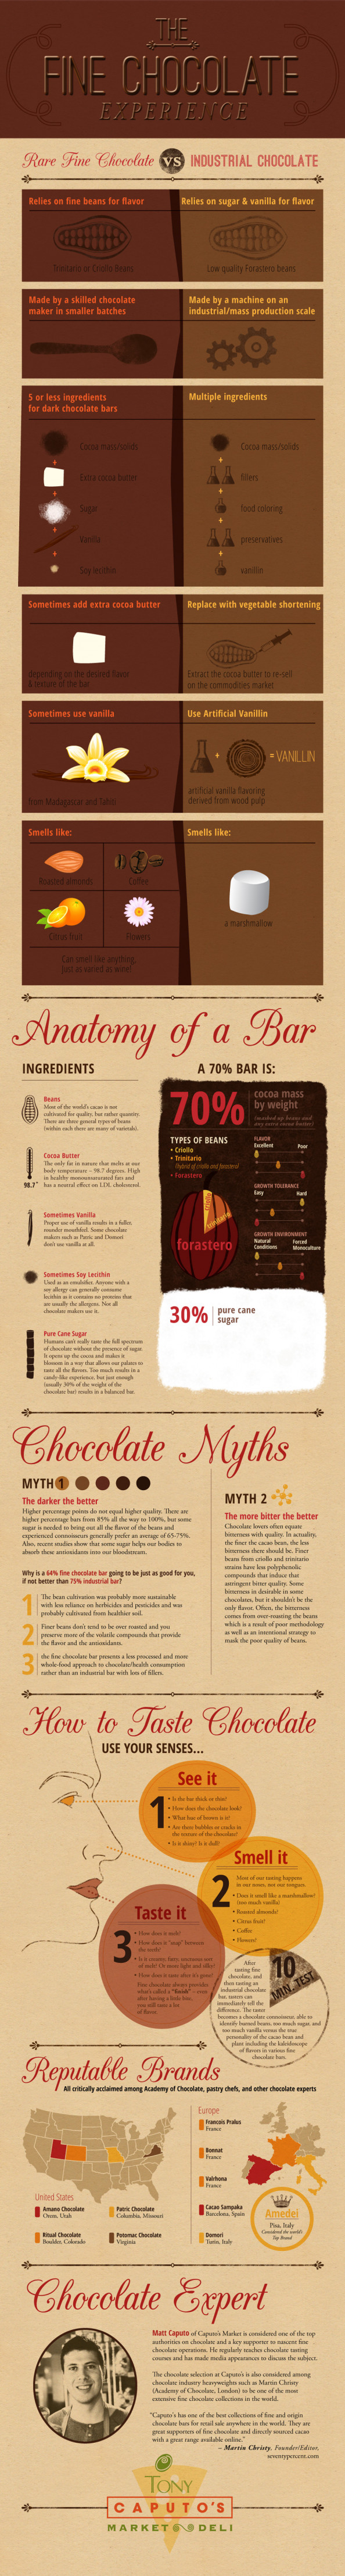 The Fine Chocolate Experience Infographic Infographic